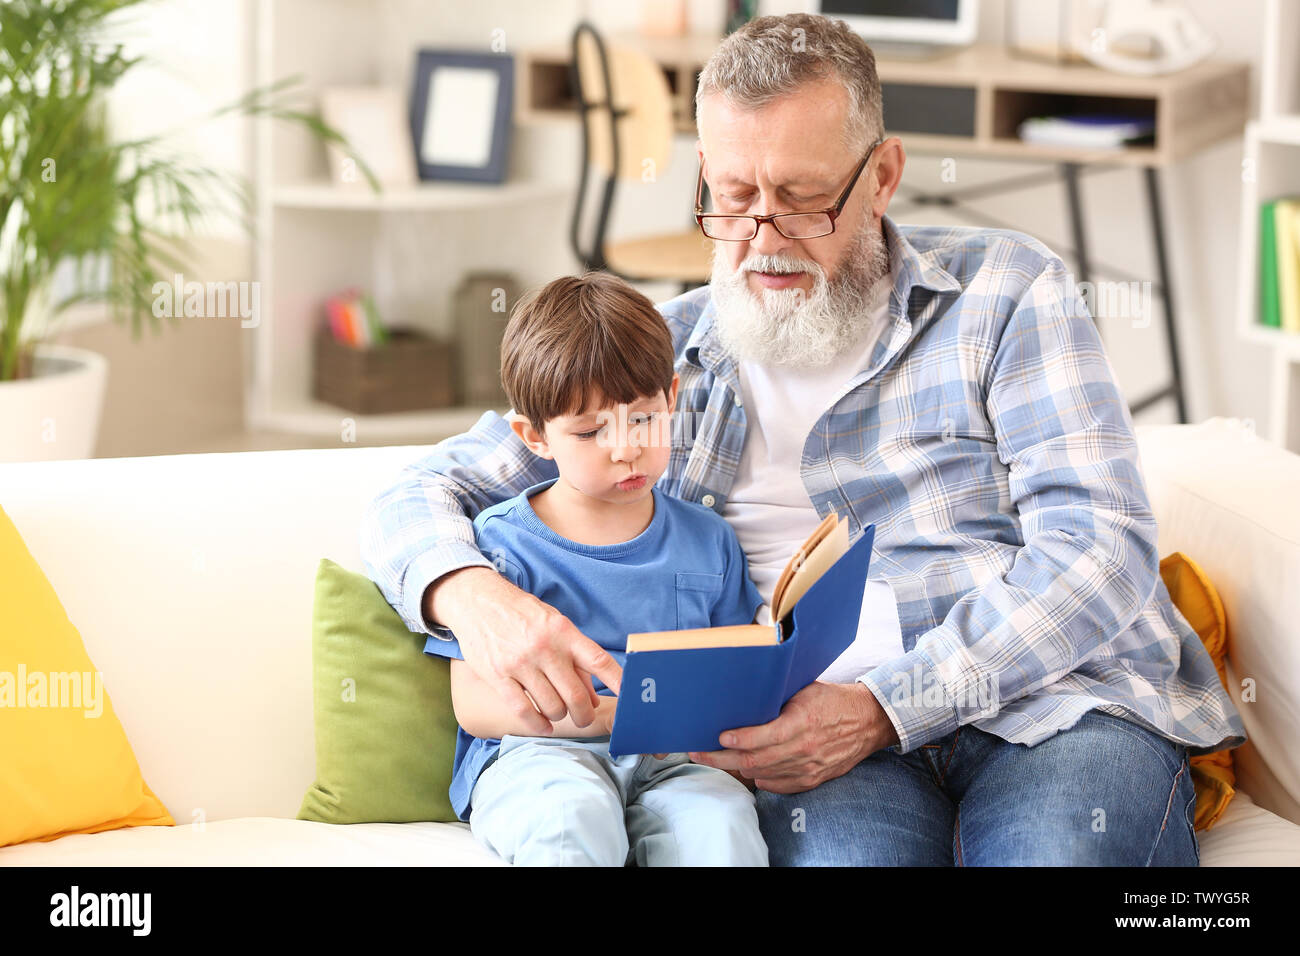 Cute little boy reading book with grandfather at home - Stock Image